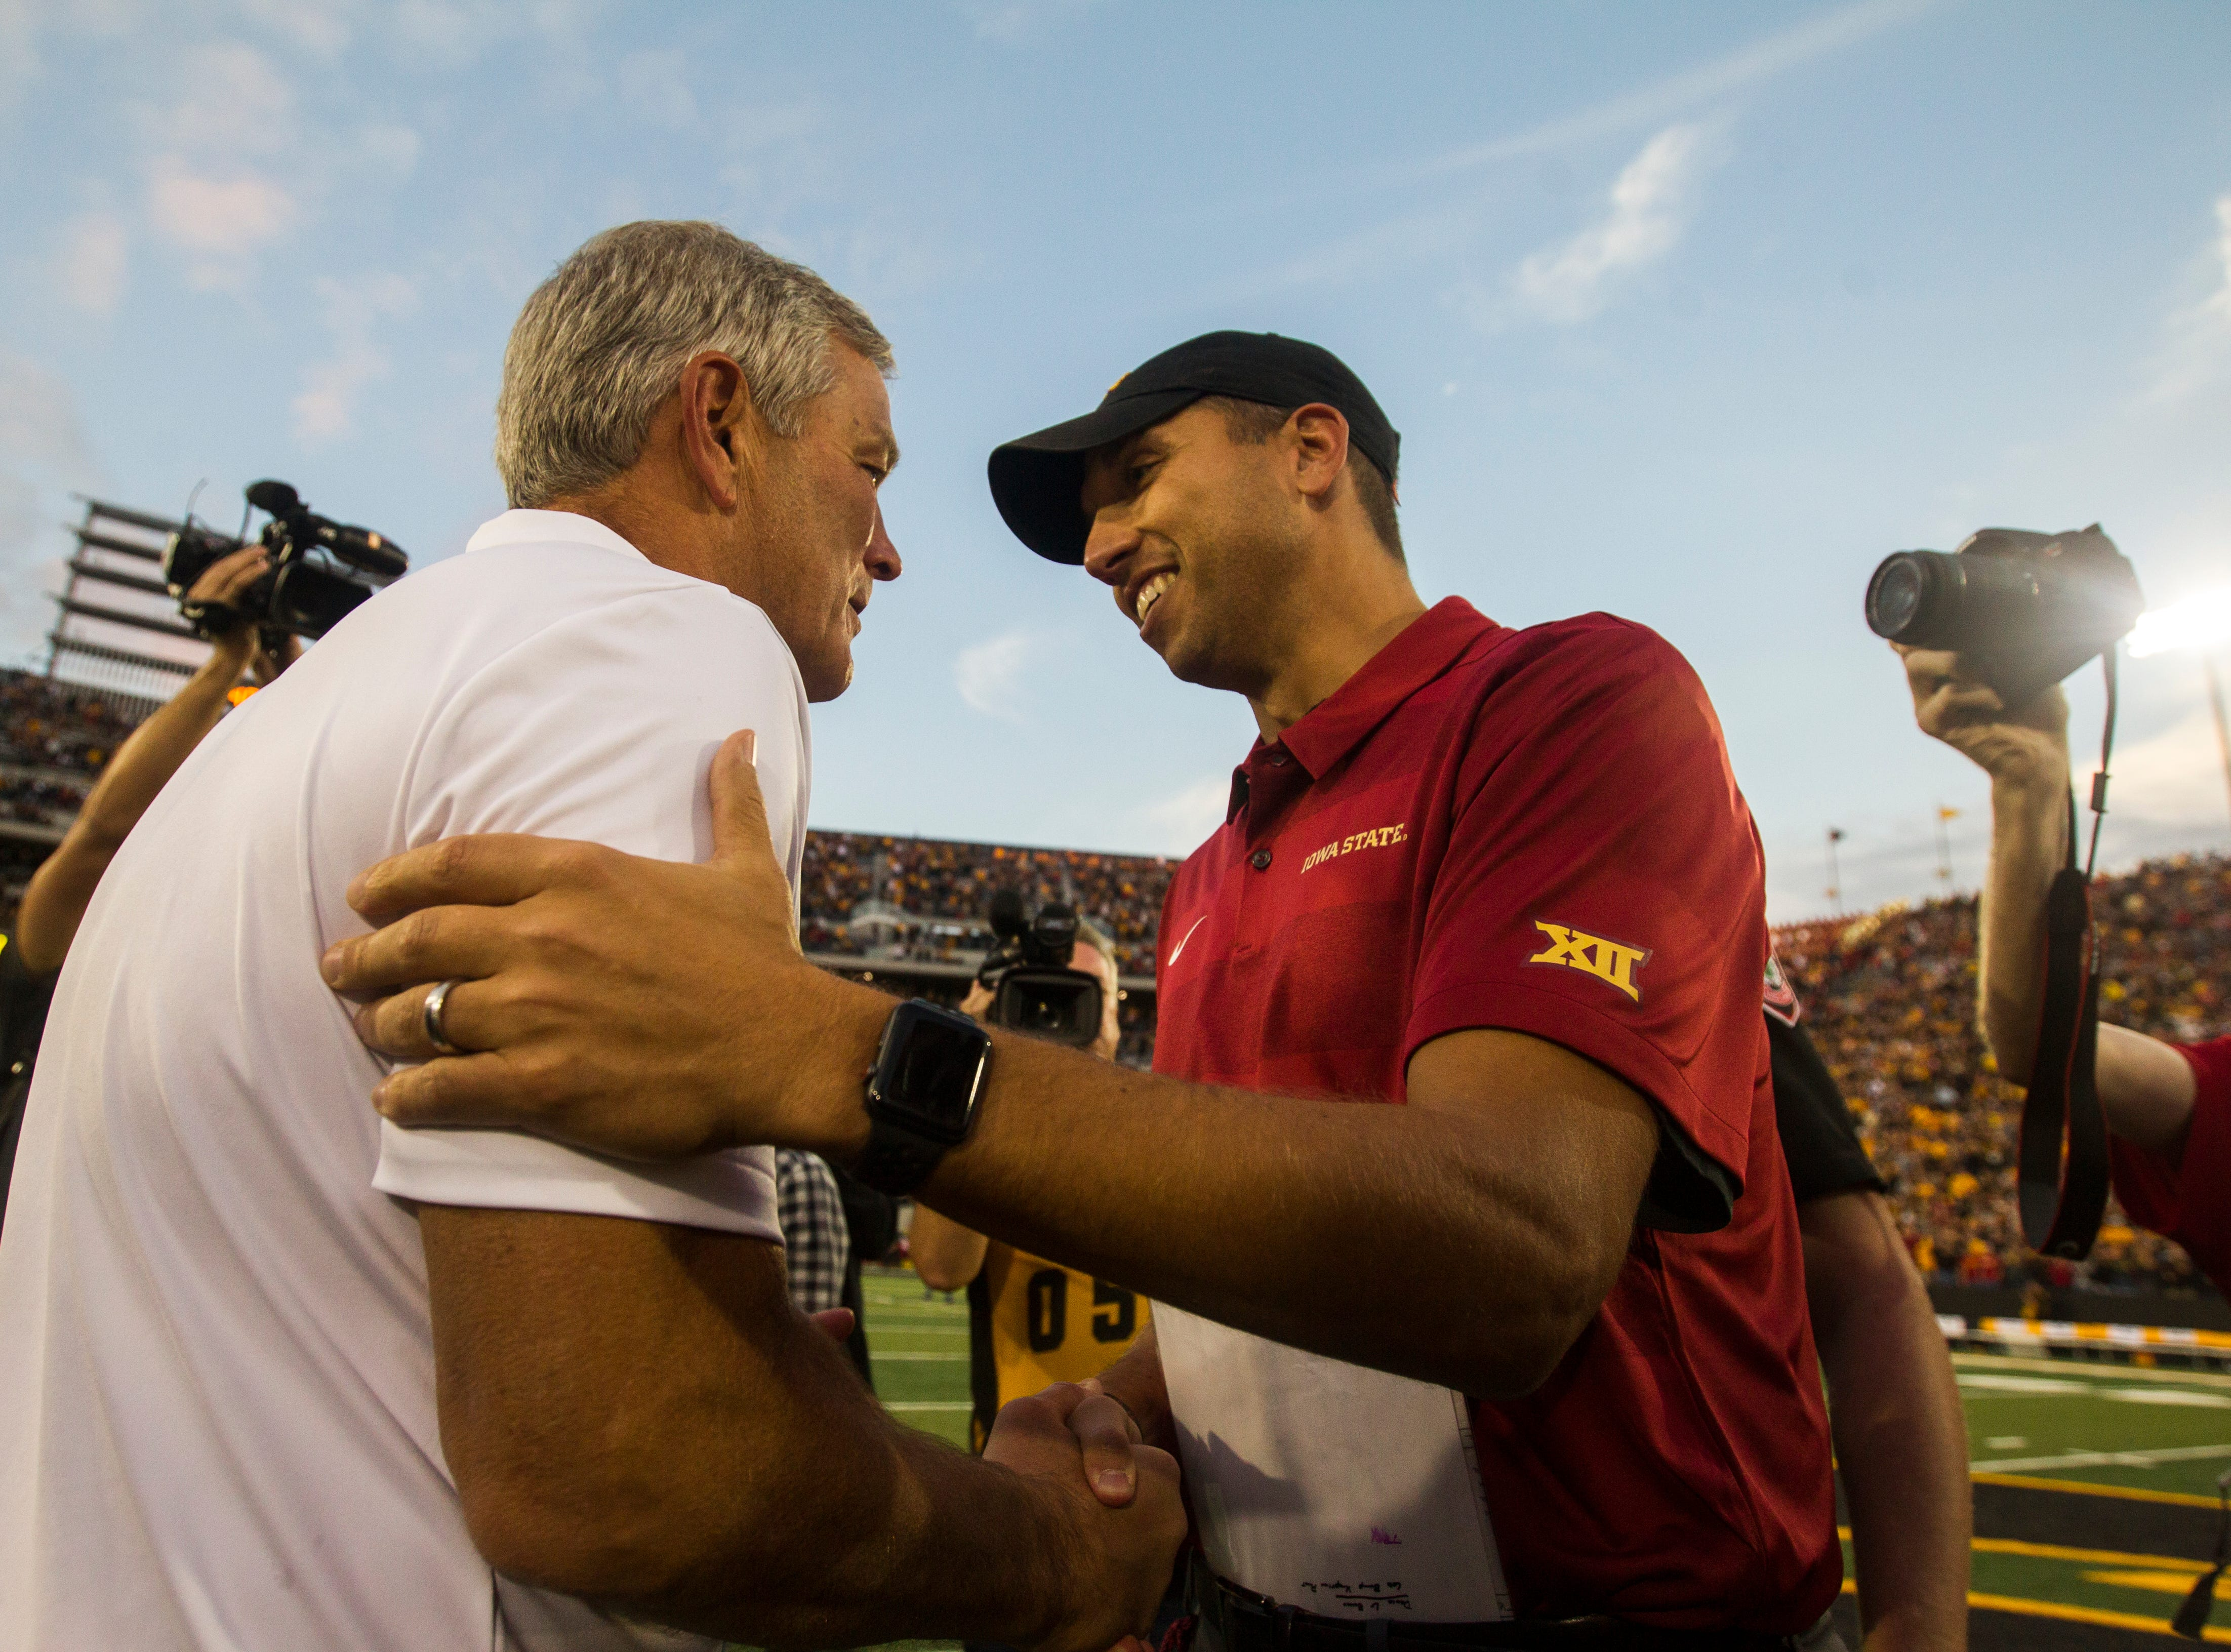 Iowa head coach Kirk Ferentz shakes hands with Iowa State head coach Matt Campbell after the Cy-Hawk NCAA football game on Saturday, Sept. 8, 2018, at Kinnick Stadium in Iowa City. The Hawkeyes defeated the Cyclones, 13-3.